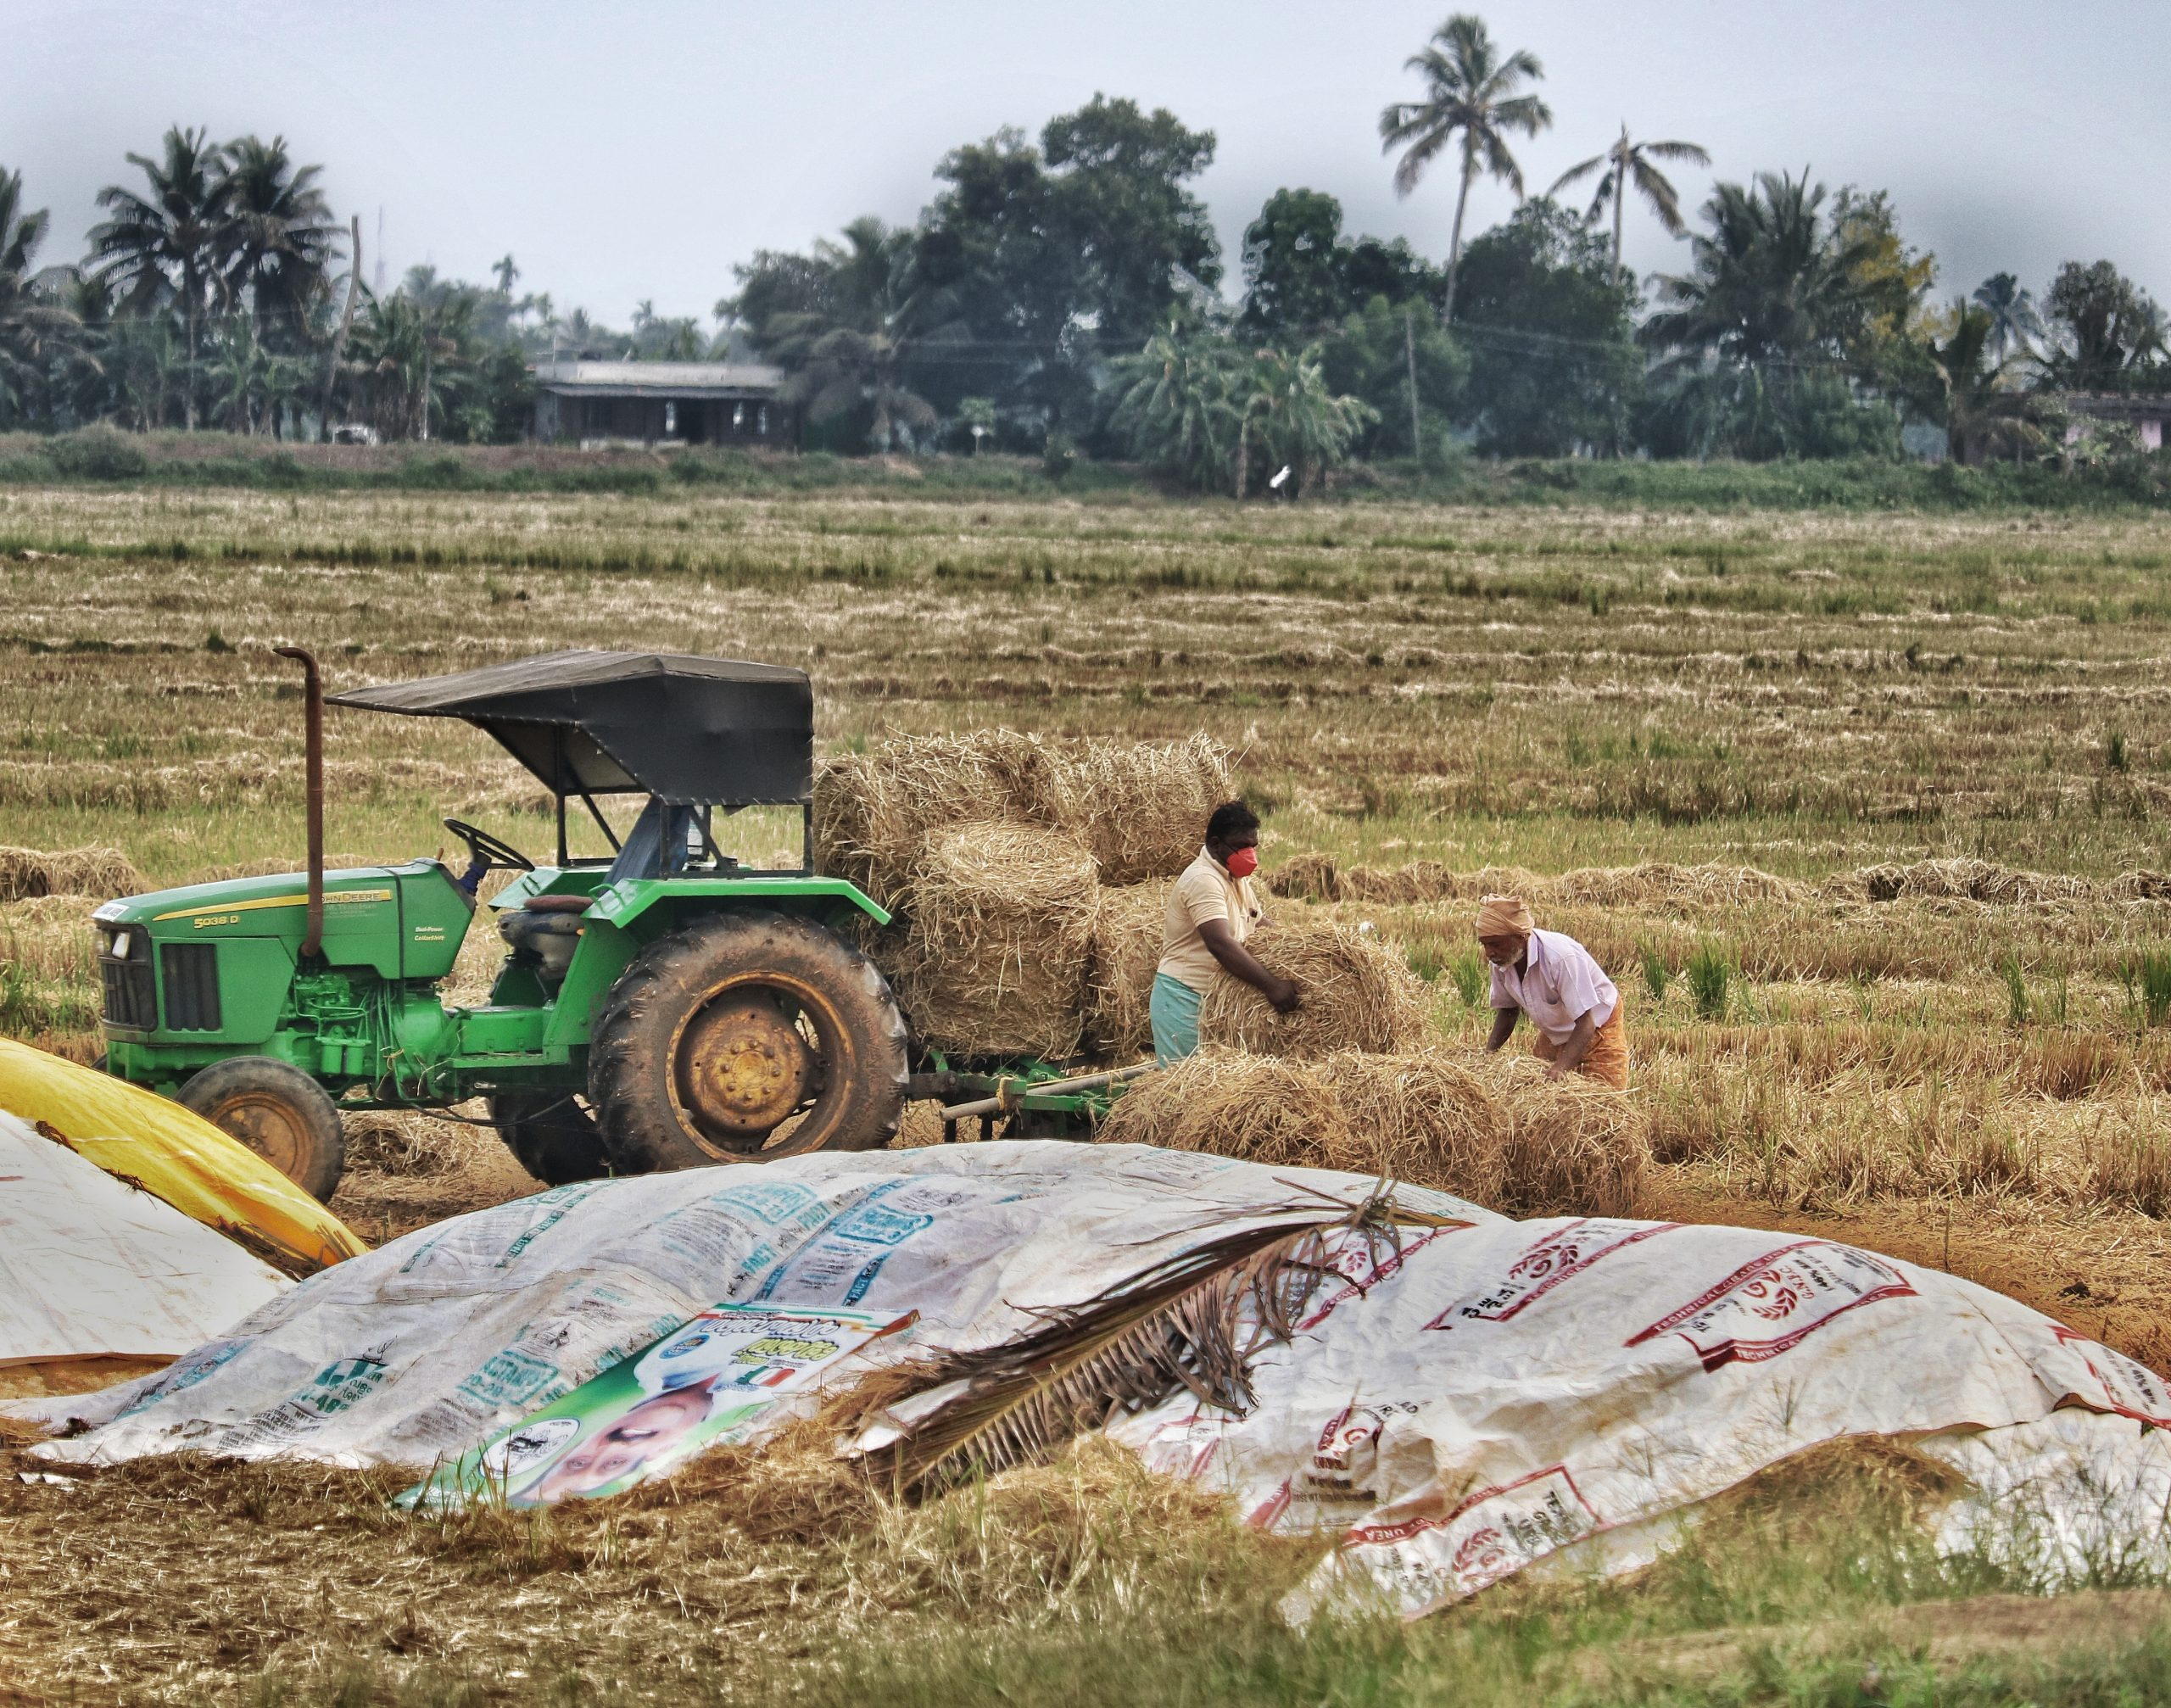 Farmers loading fodder in a tractor